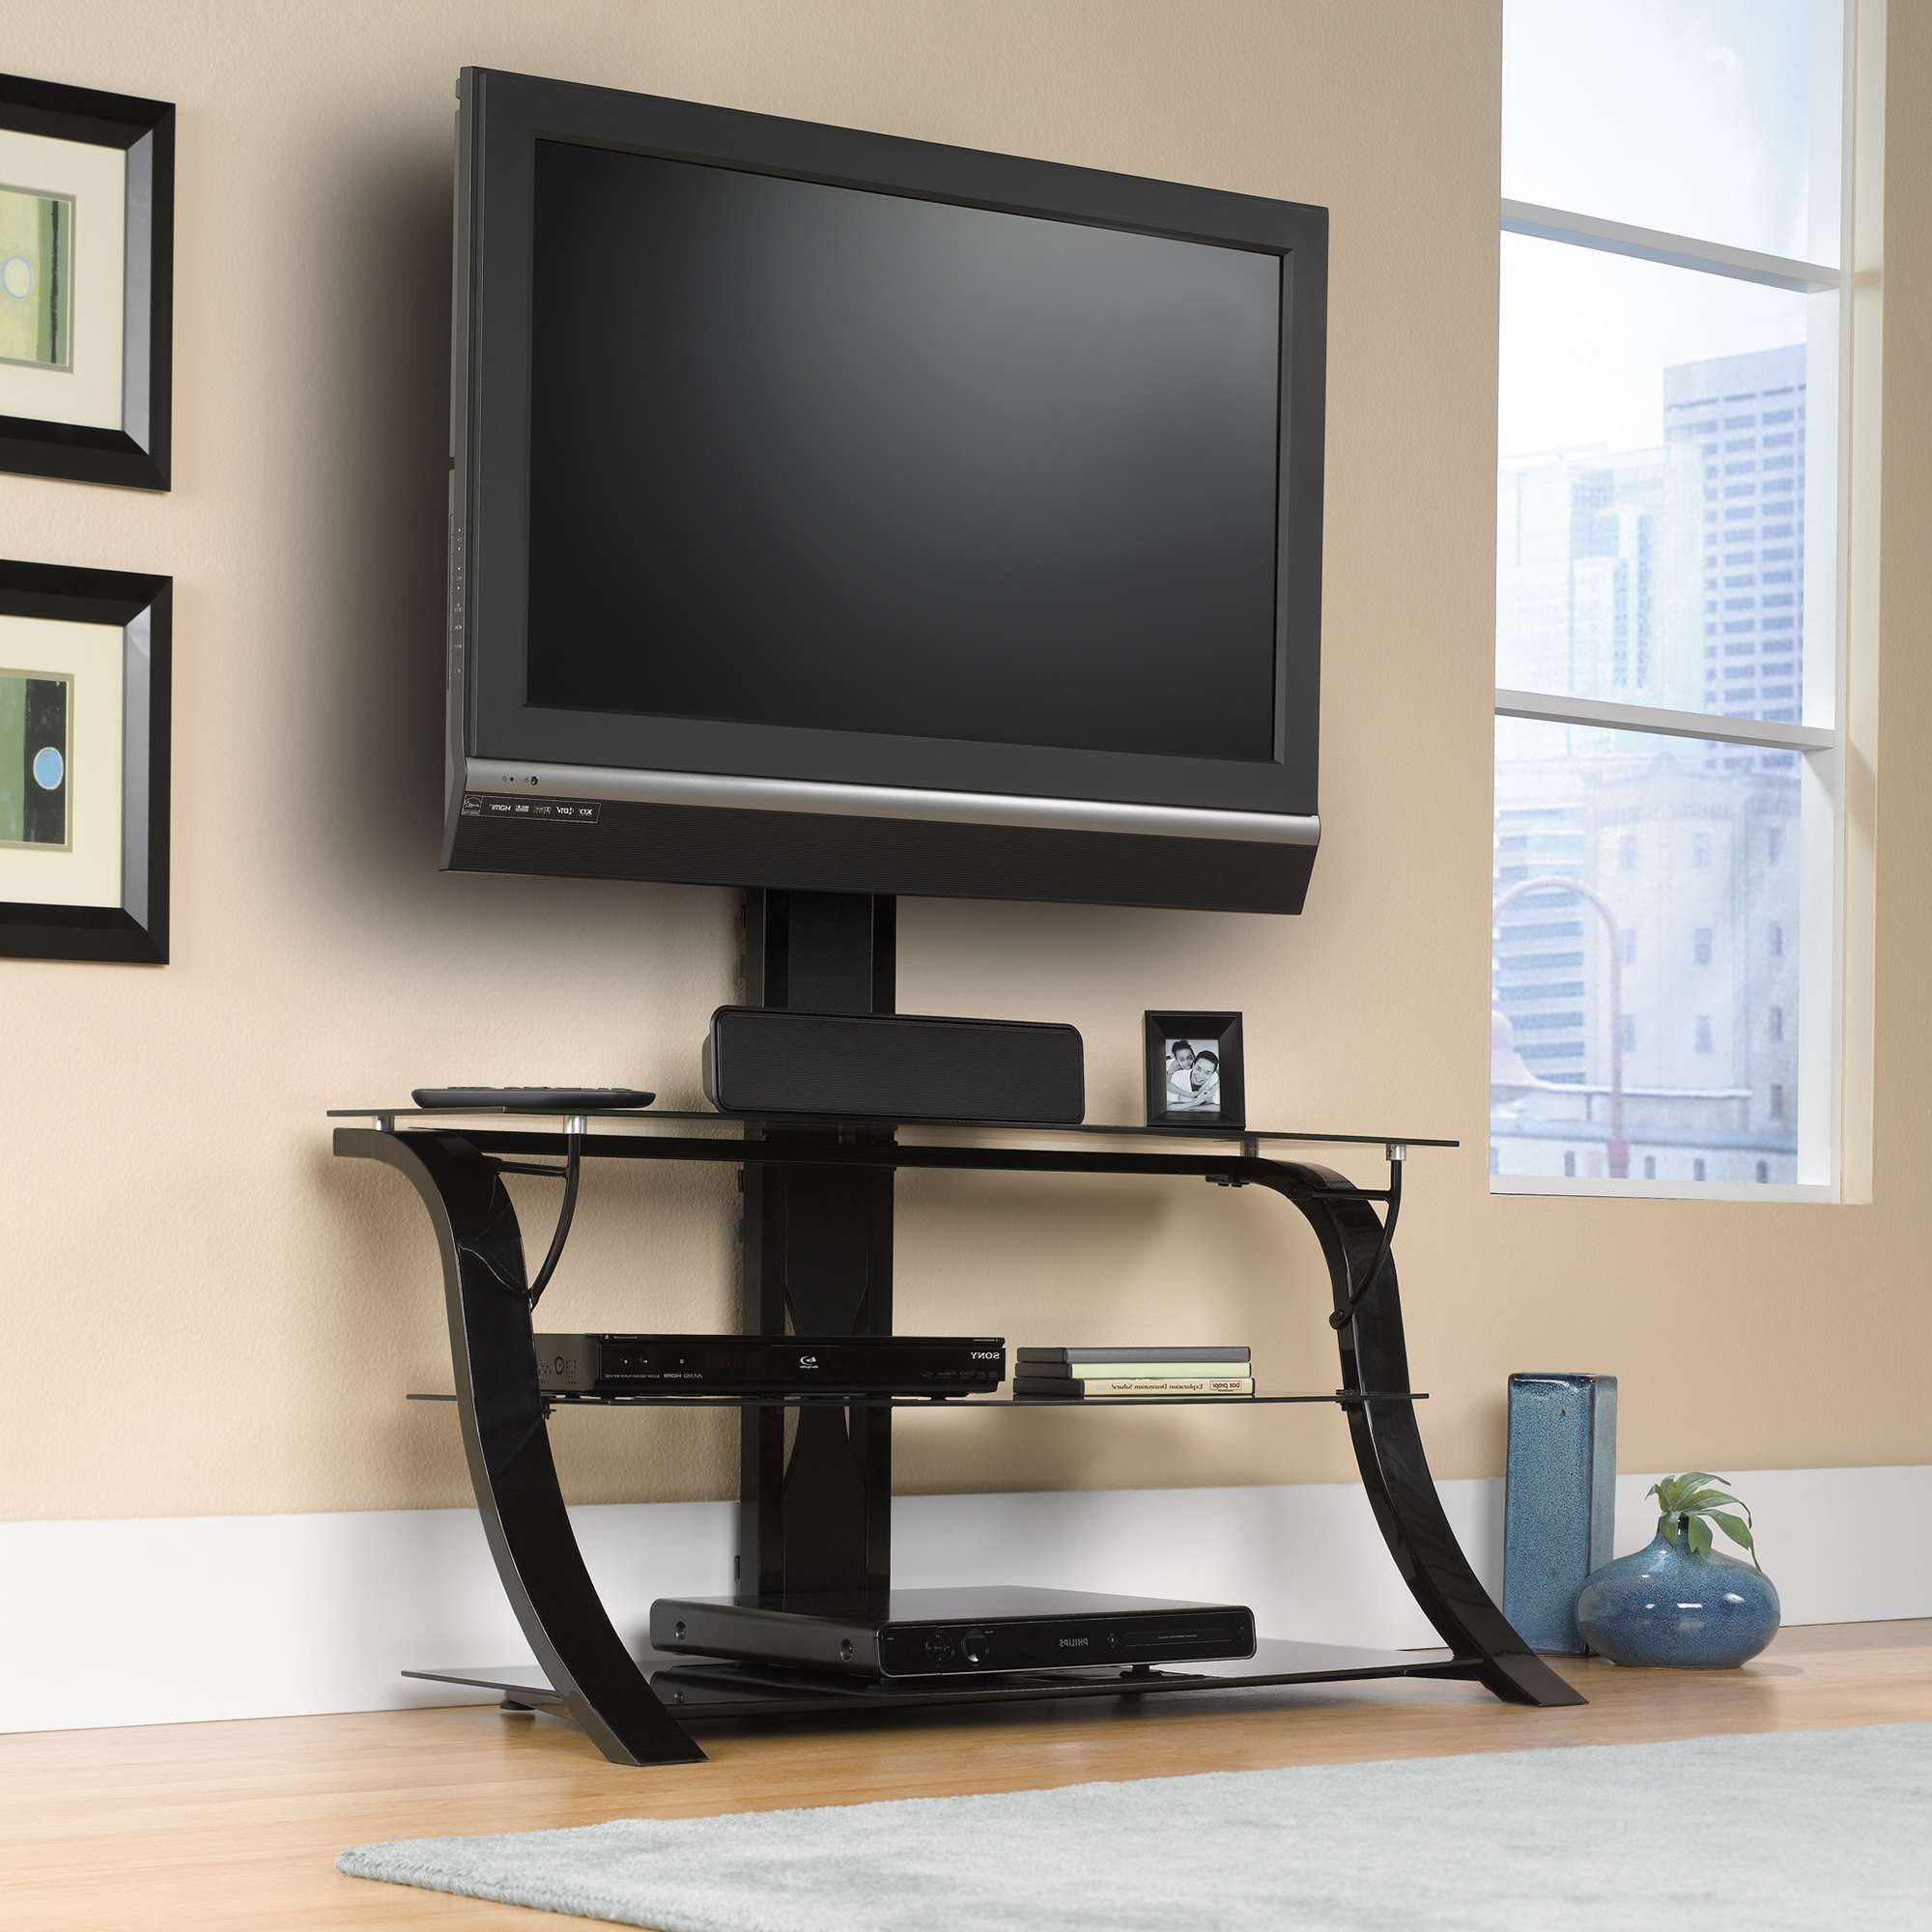 Tv Stand : Da1De92Aaf0E 1 Marvelous Tv Stand With Pictures Design Pertaining To Cordoba Tv Stands (View 11 of 15)